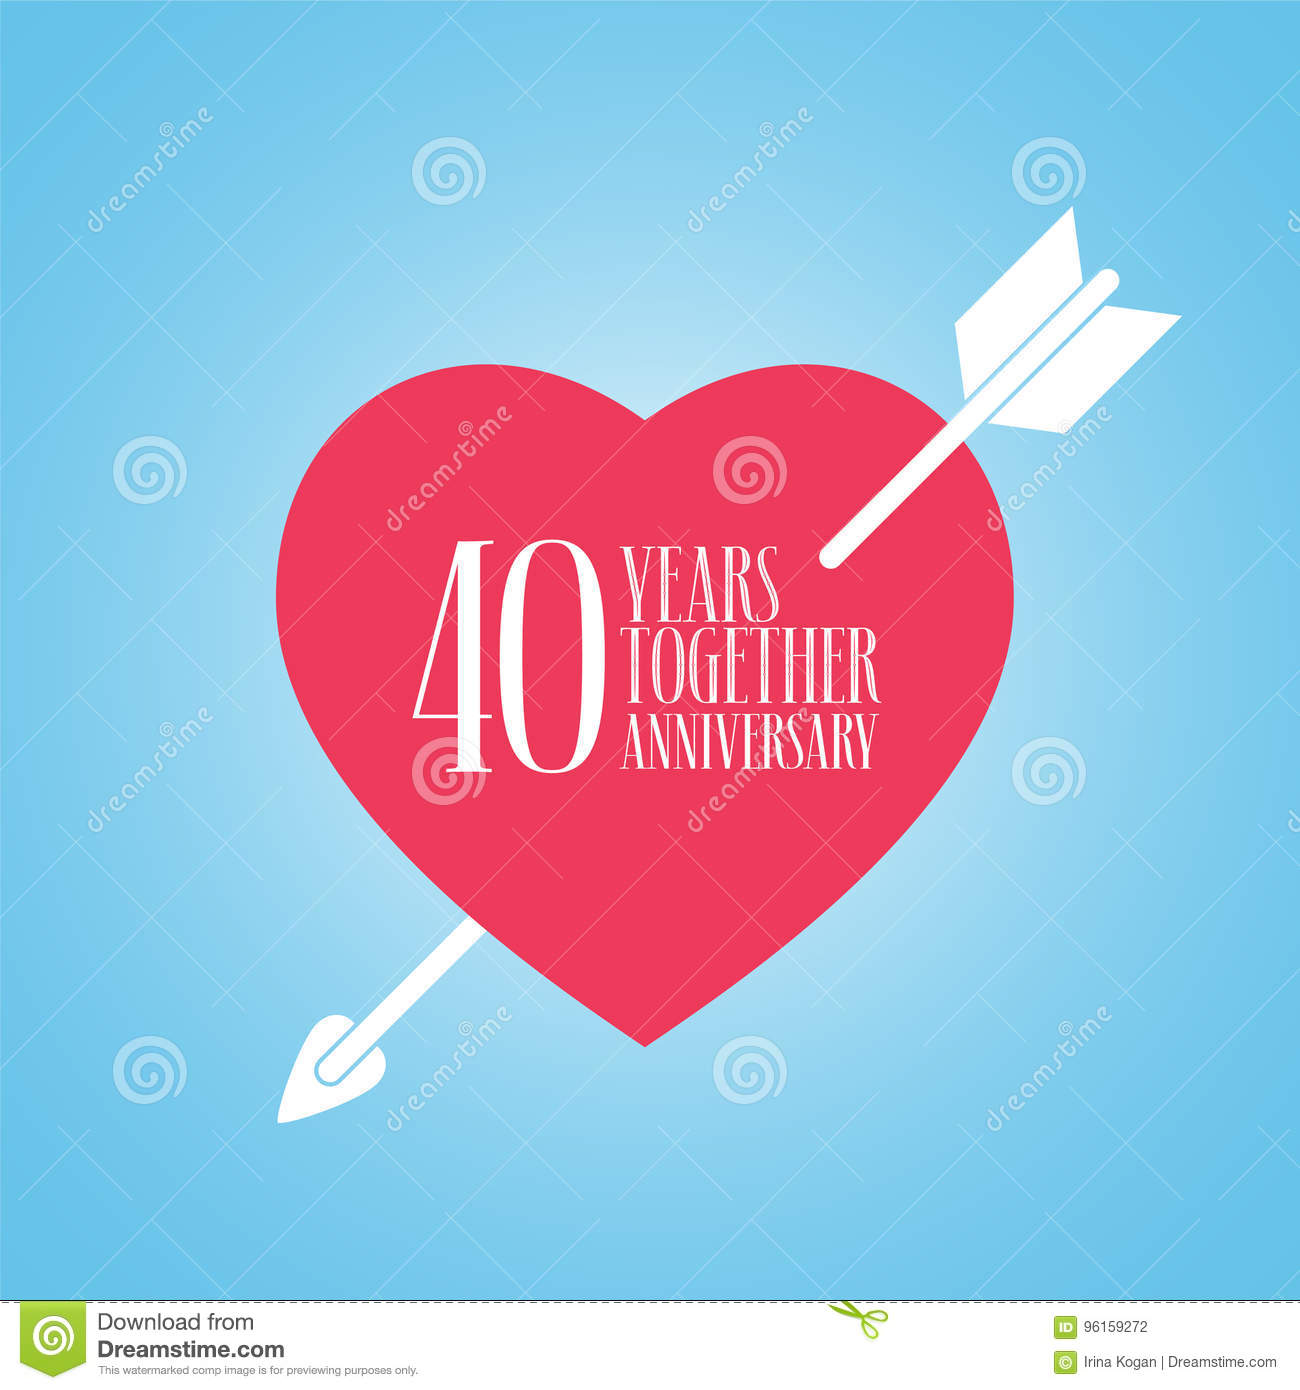 40 Years Anniversary Of Wedding Or Marriage Vector Icon